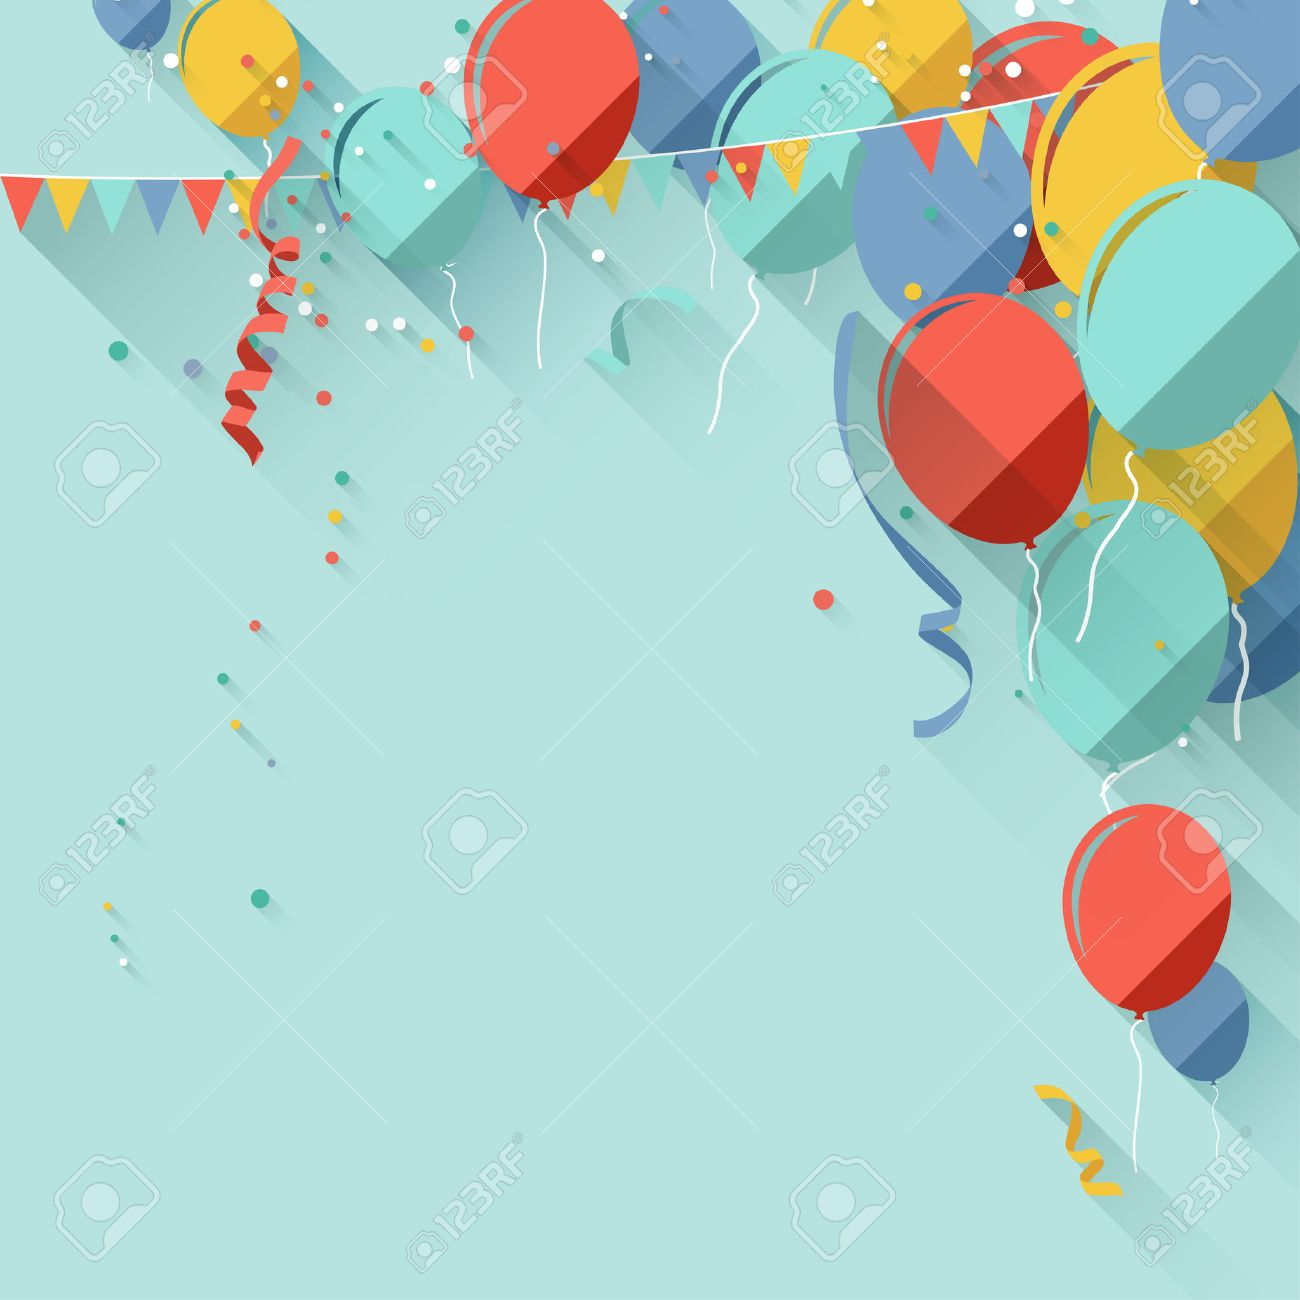 colorful birthday background in flat design style royalty free